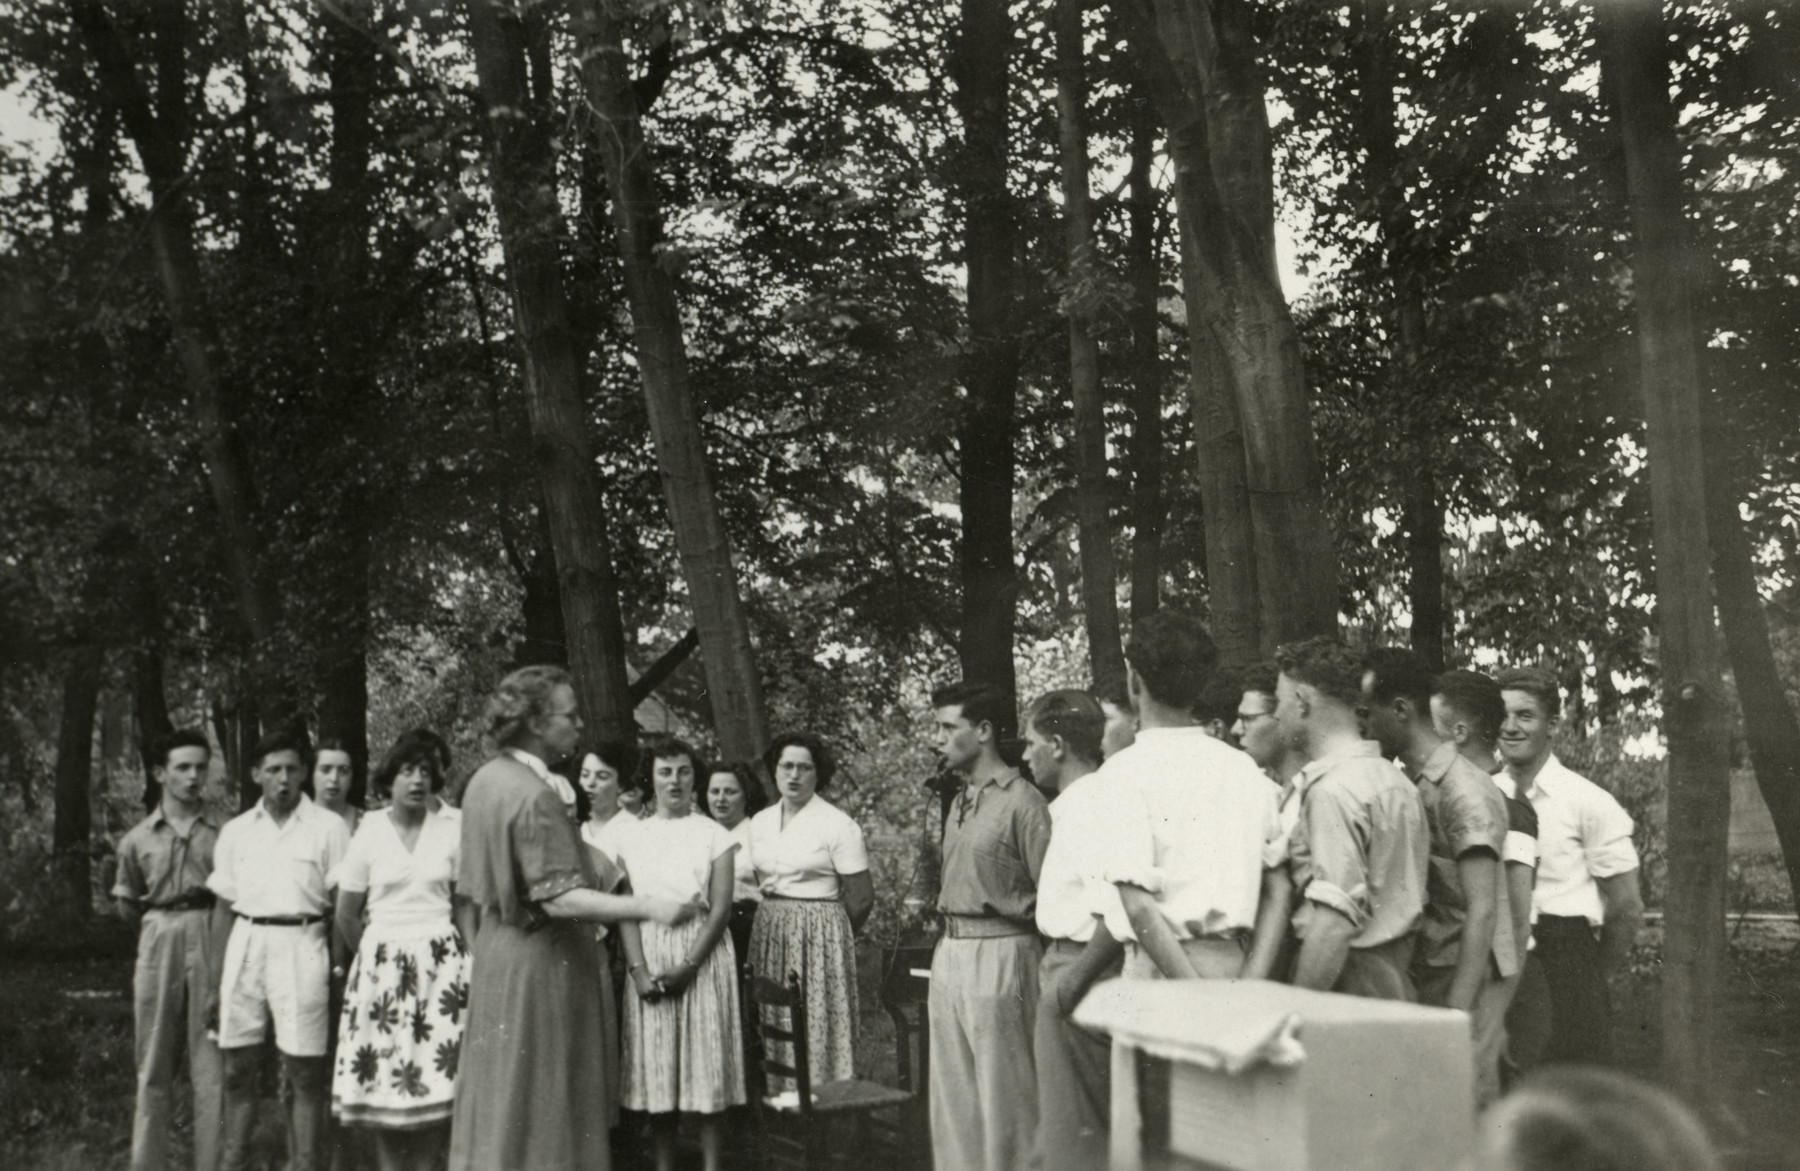 Zionist youth sing outdoors in a hachshara in postwar Holland.